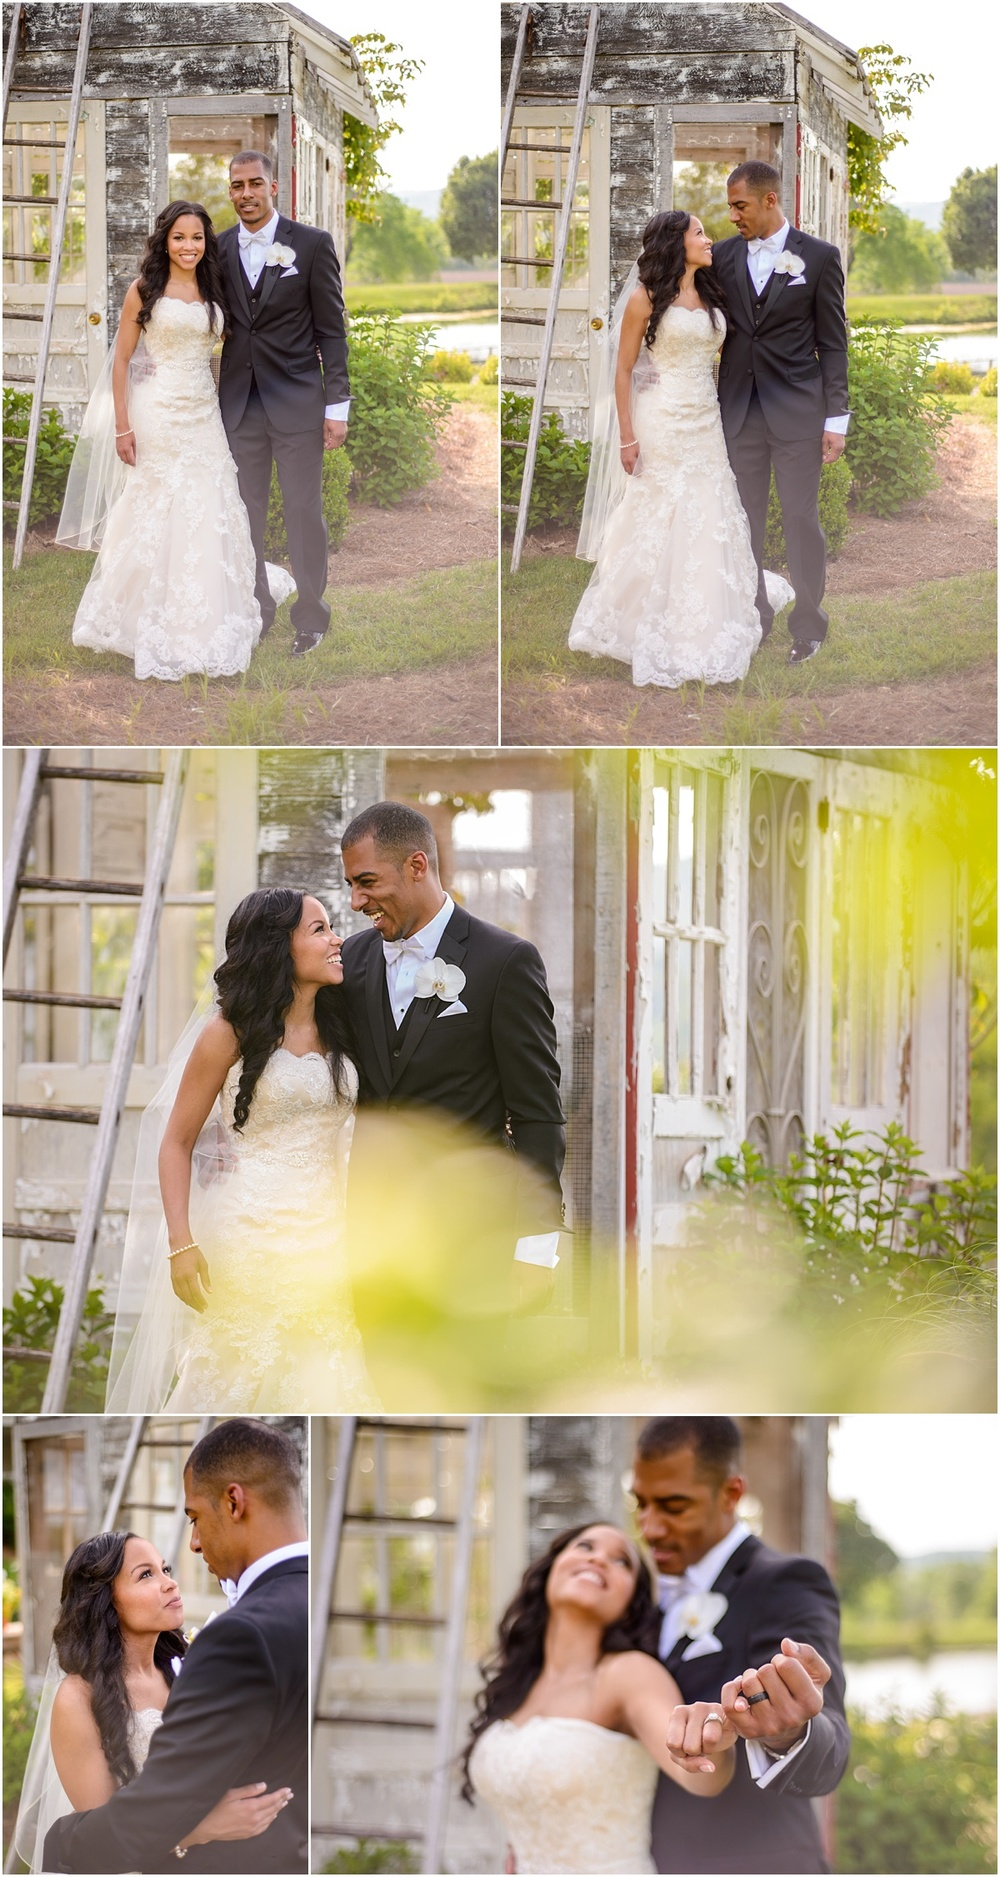 Greg Smit Photography Mint Springs Farm Nashville Tennessee wedding photographer_0346